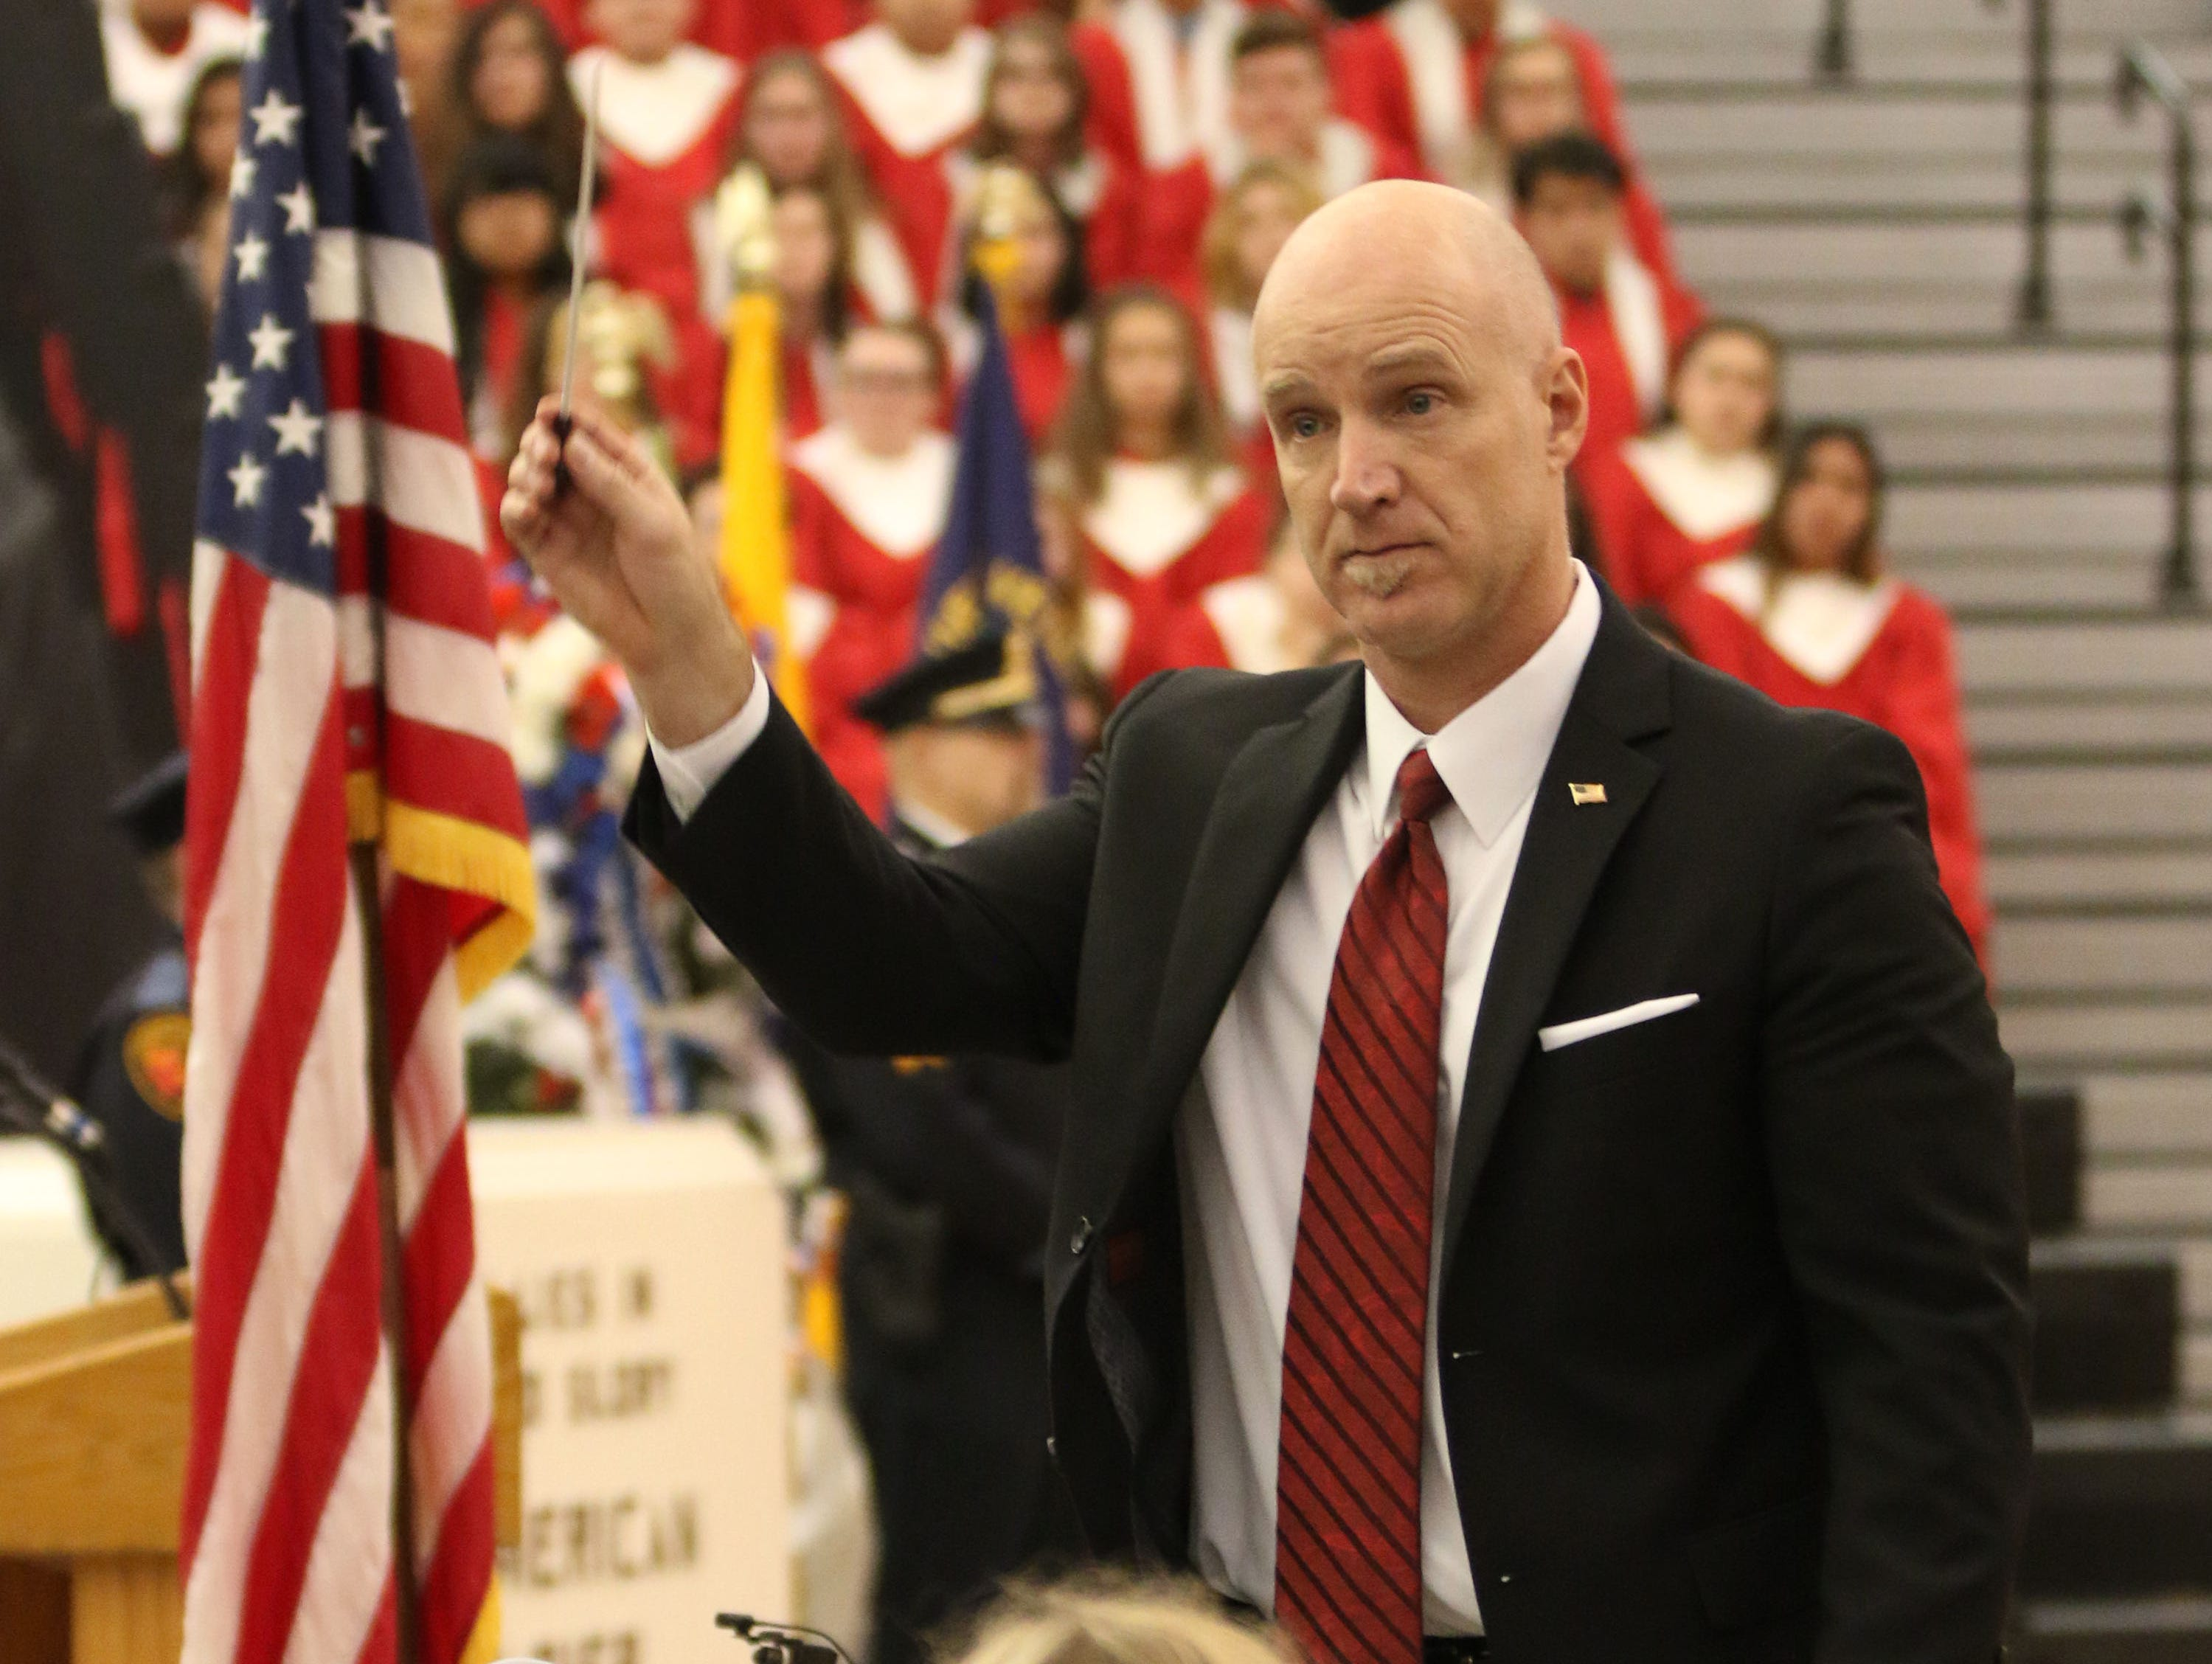 Sheboygan South band director Wade Heinen directs the American Salute during the Veterans Day Program at Sheboygan South High School, Friday, November 9, 2018, in Sheboygan, Wis.